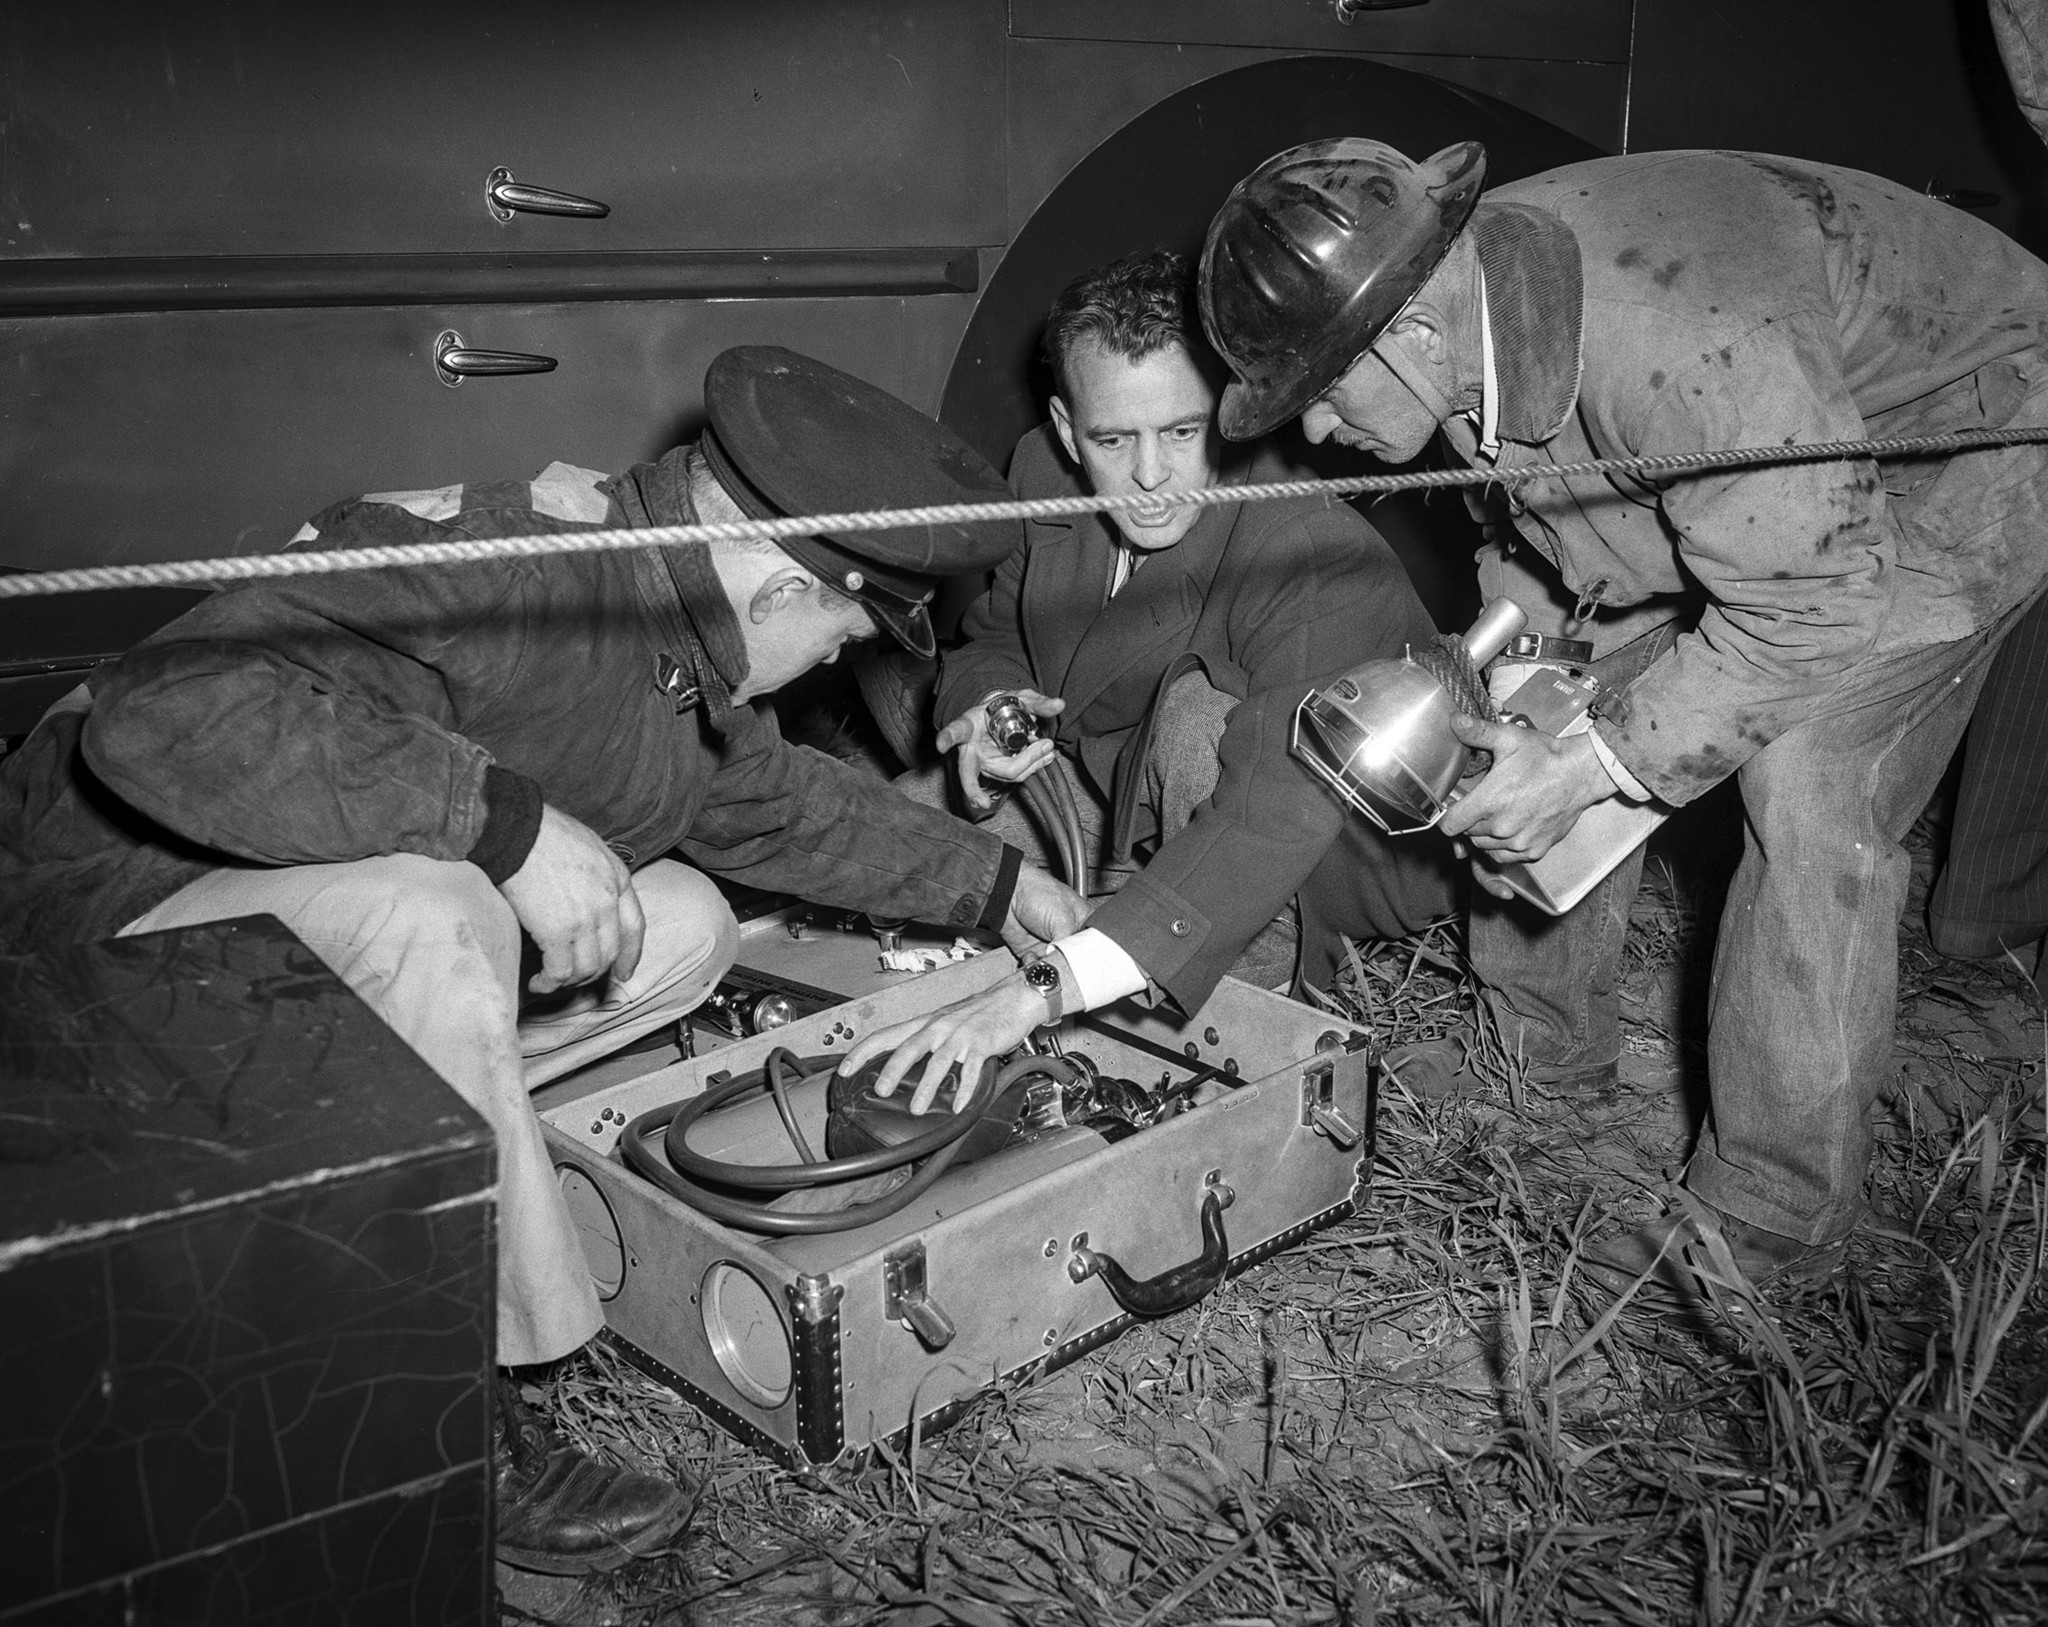 April 9, 1949: The Fiscus family physican Dr. Robert McCullock, makes sure his oxygen equipment is r